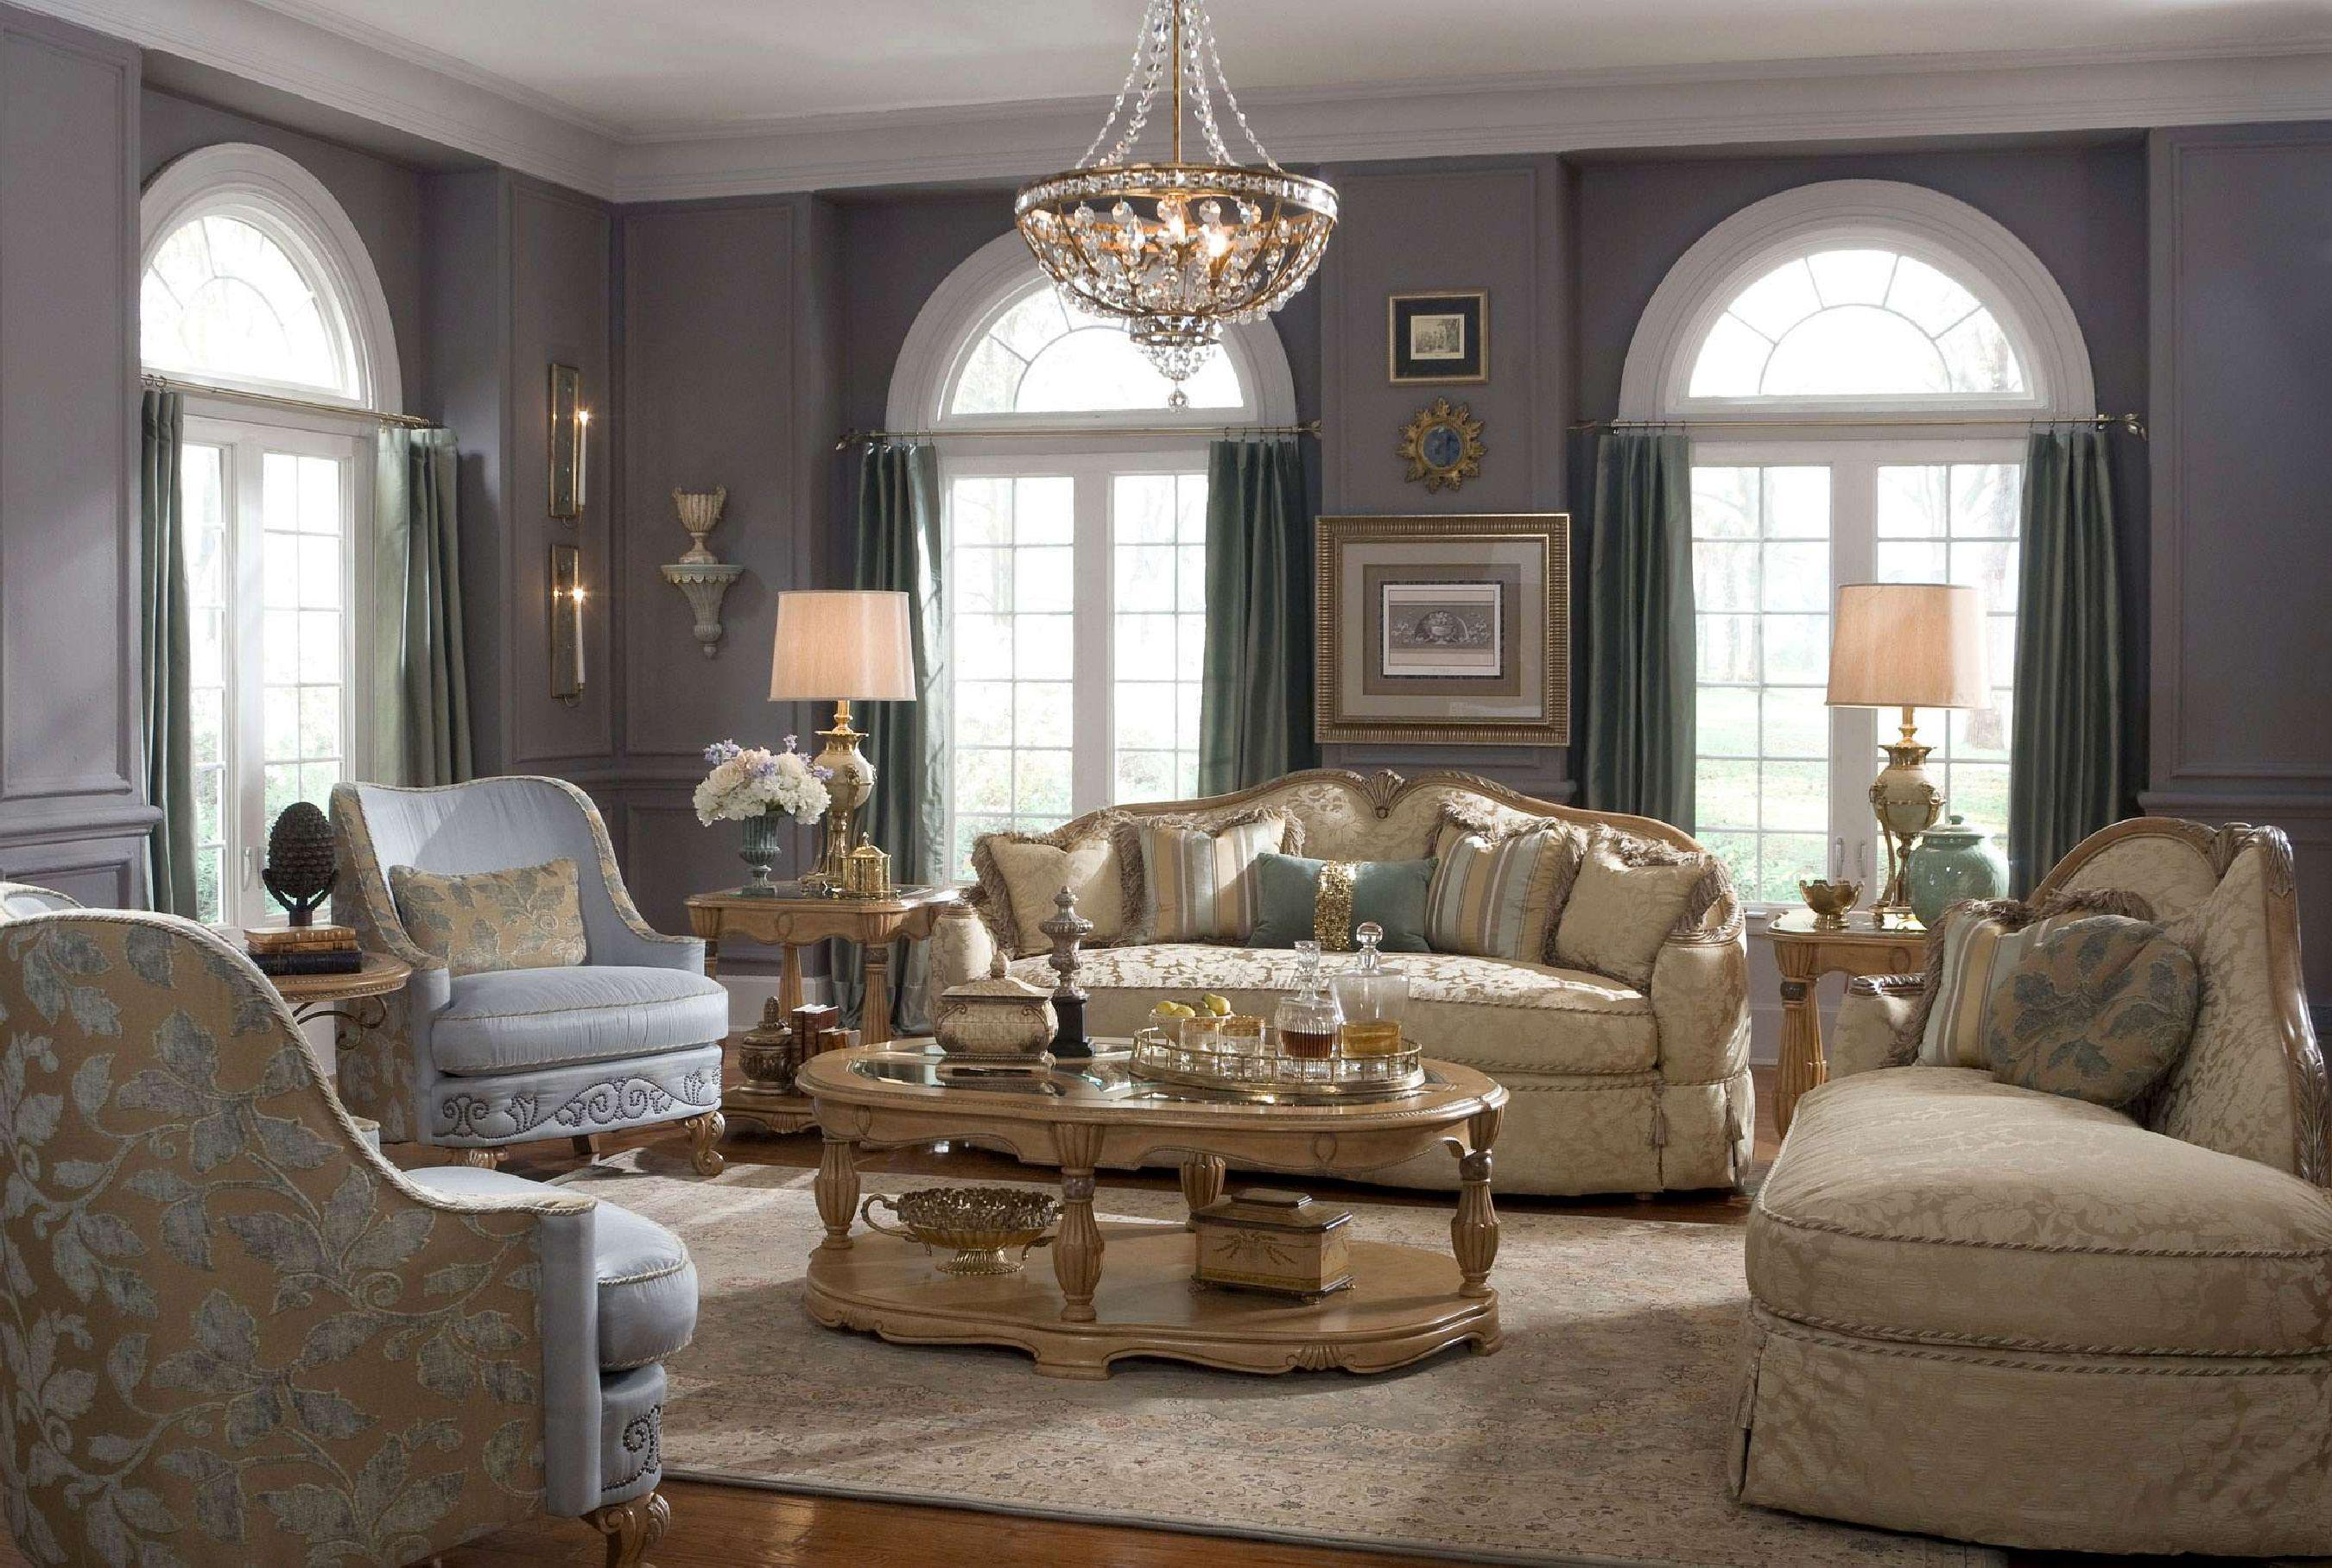 3 benefits of decorating your home with antiques 3 for Decorate your home